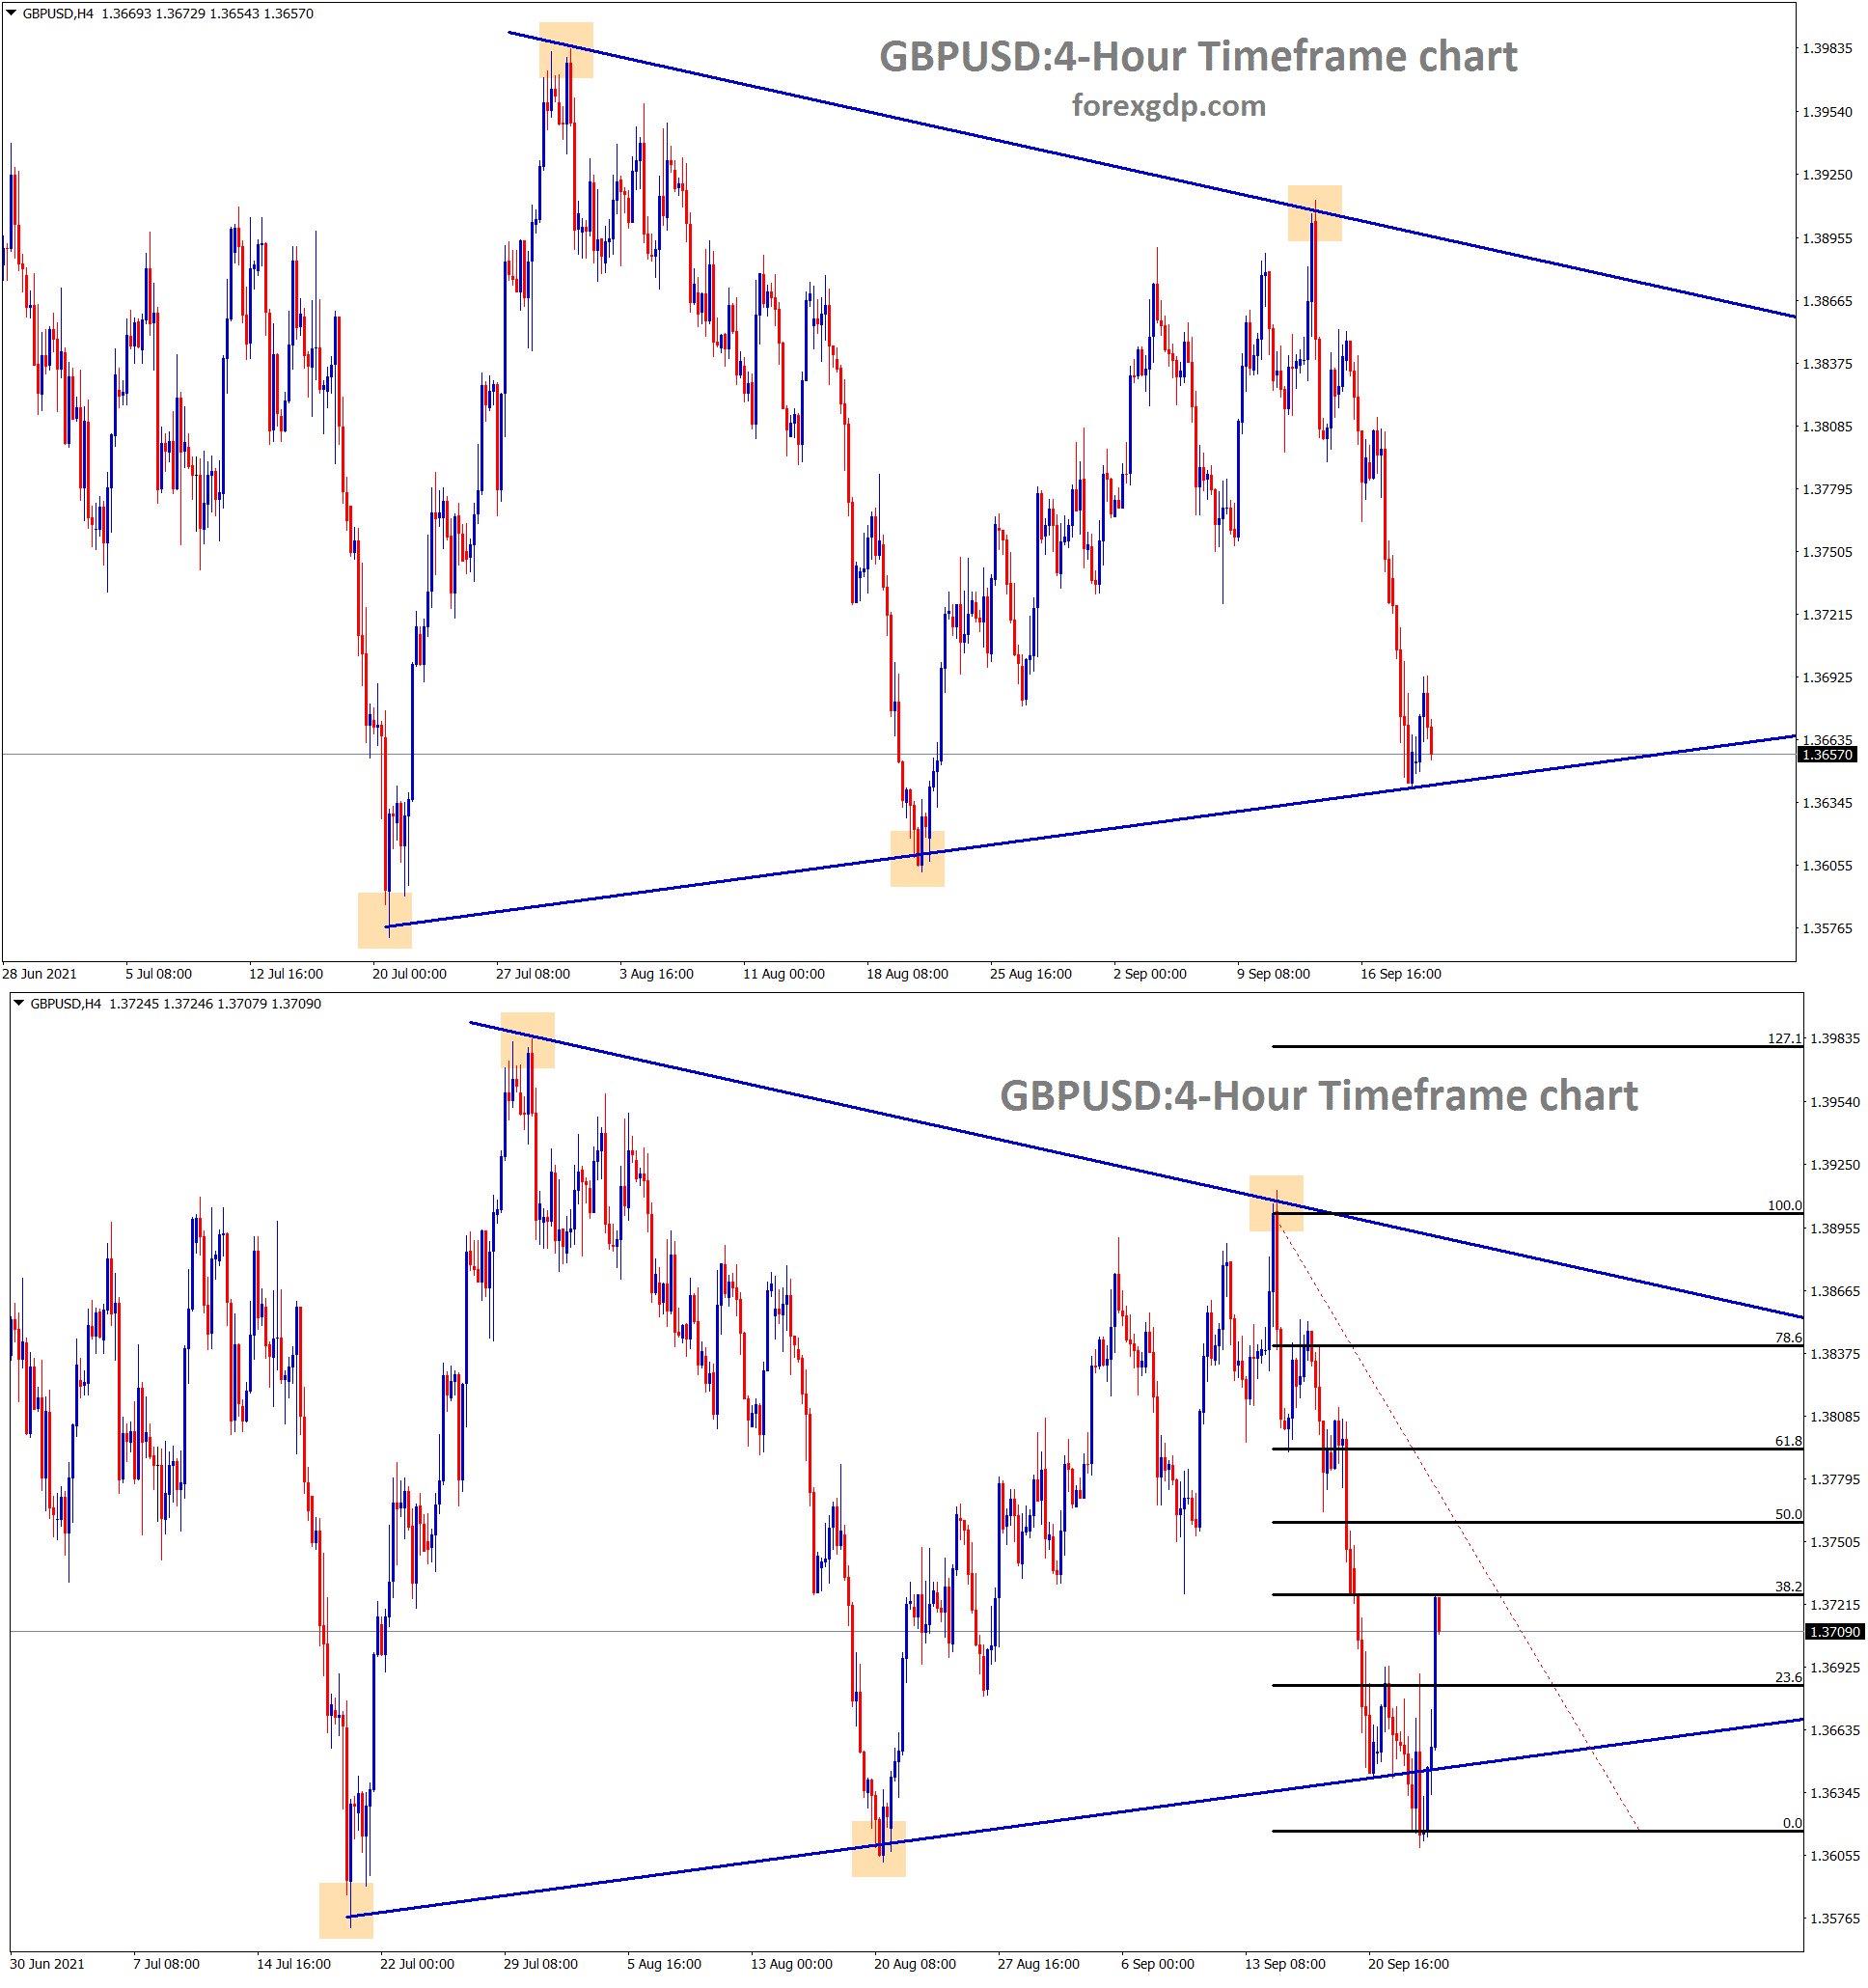 GBPUSD is rebounding from the low level of the symmetrical triangle and it reached 38 retracement now